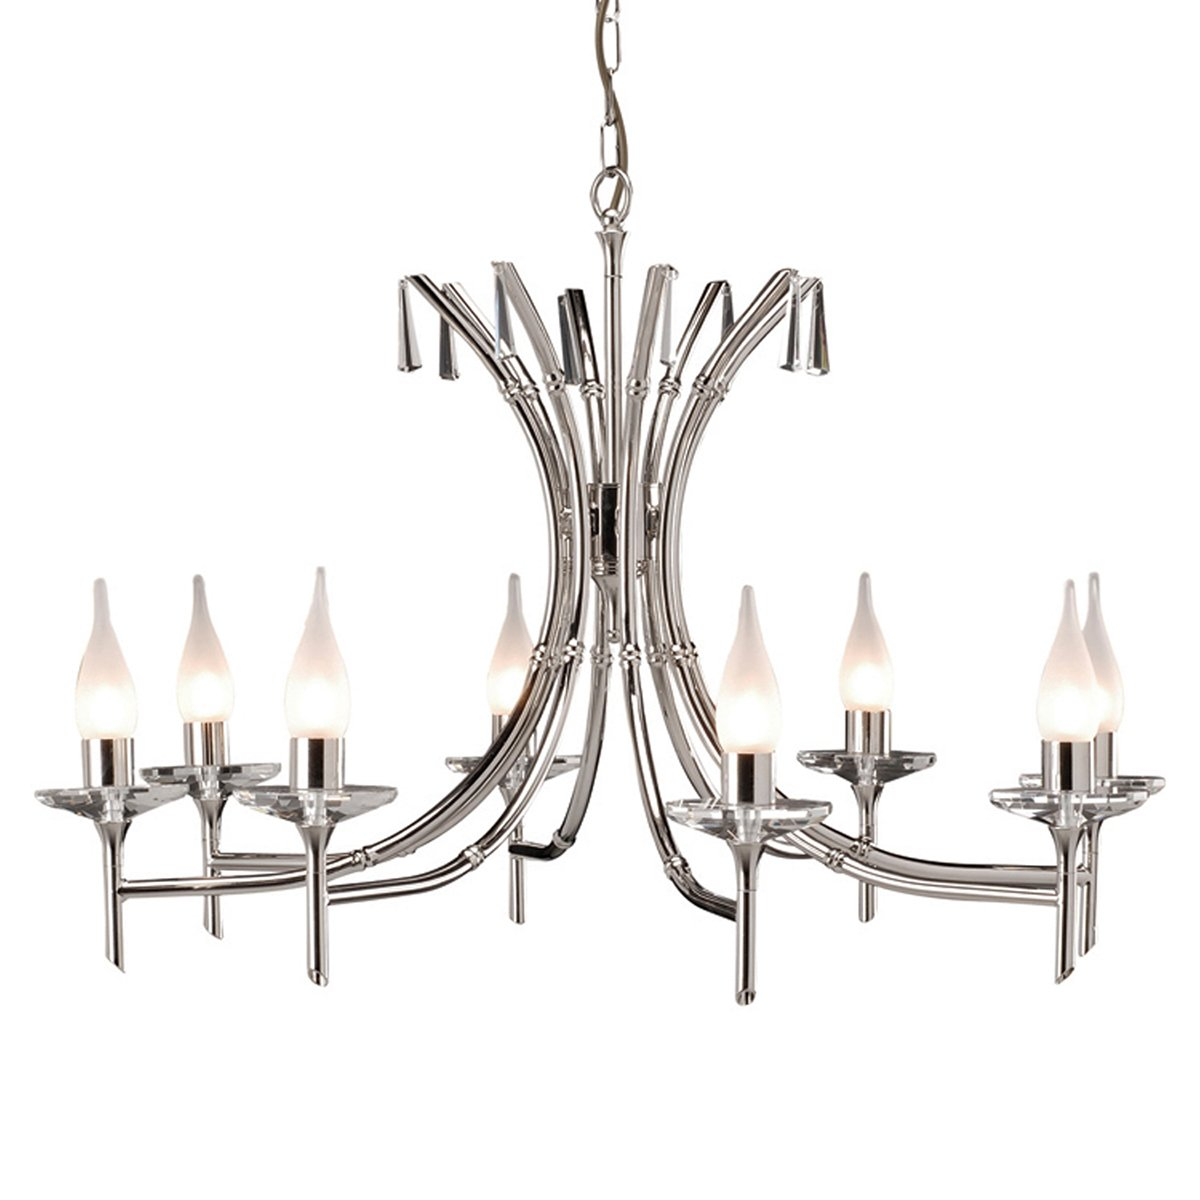 Elstead BR8 Brightwell 8 Light Chandelier in Polished Nickel